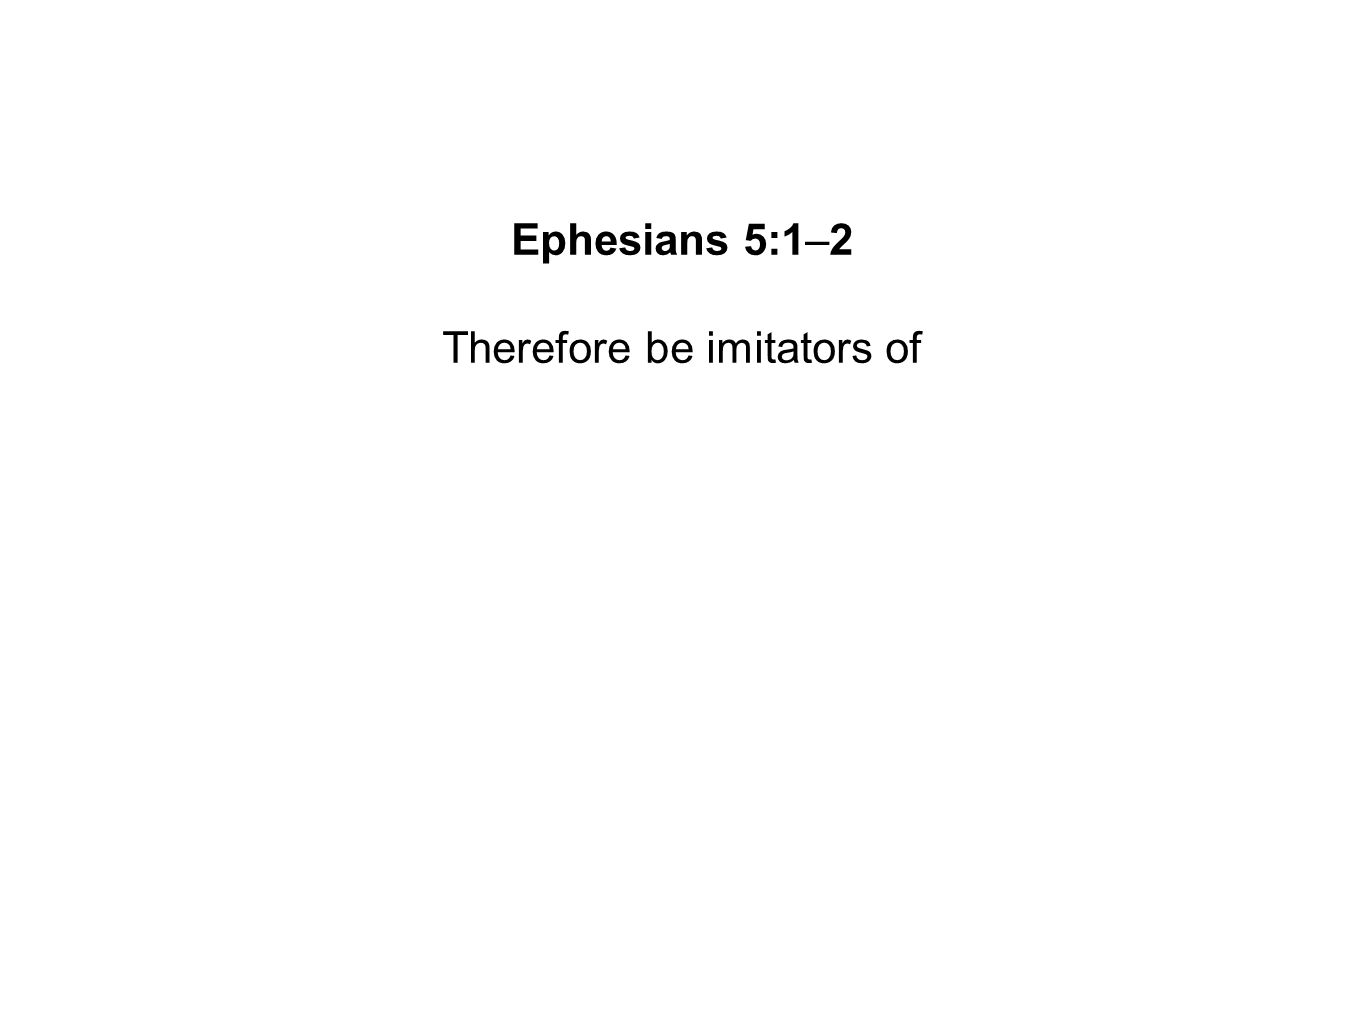 Therefore be imitators of